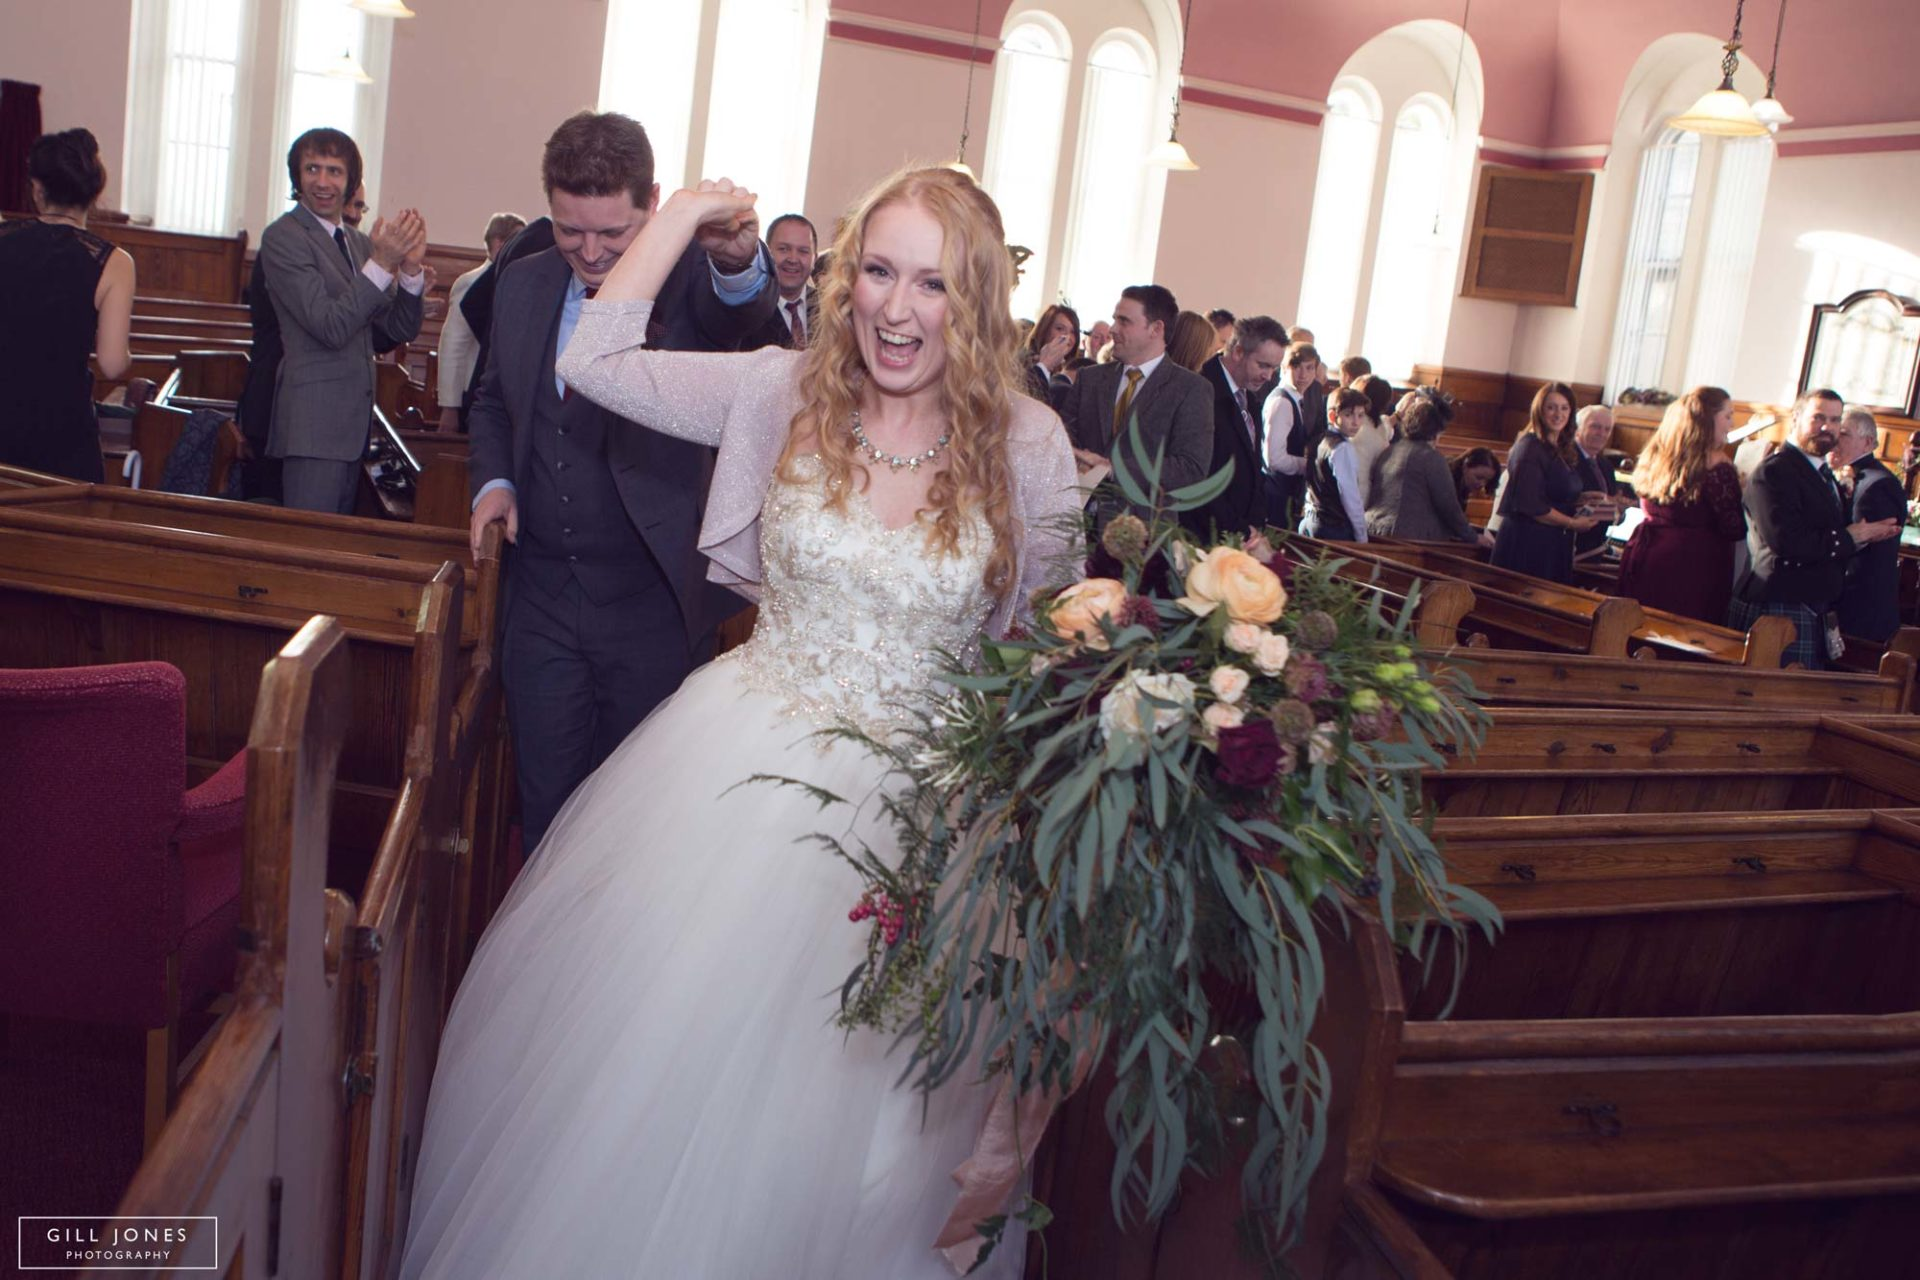 the bride leading the groom out of chapel